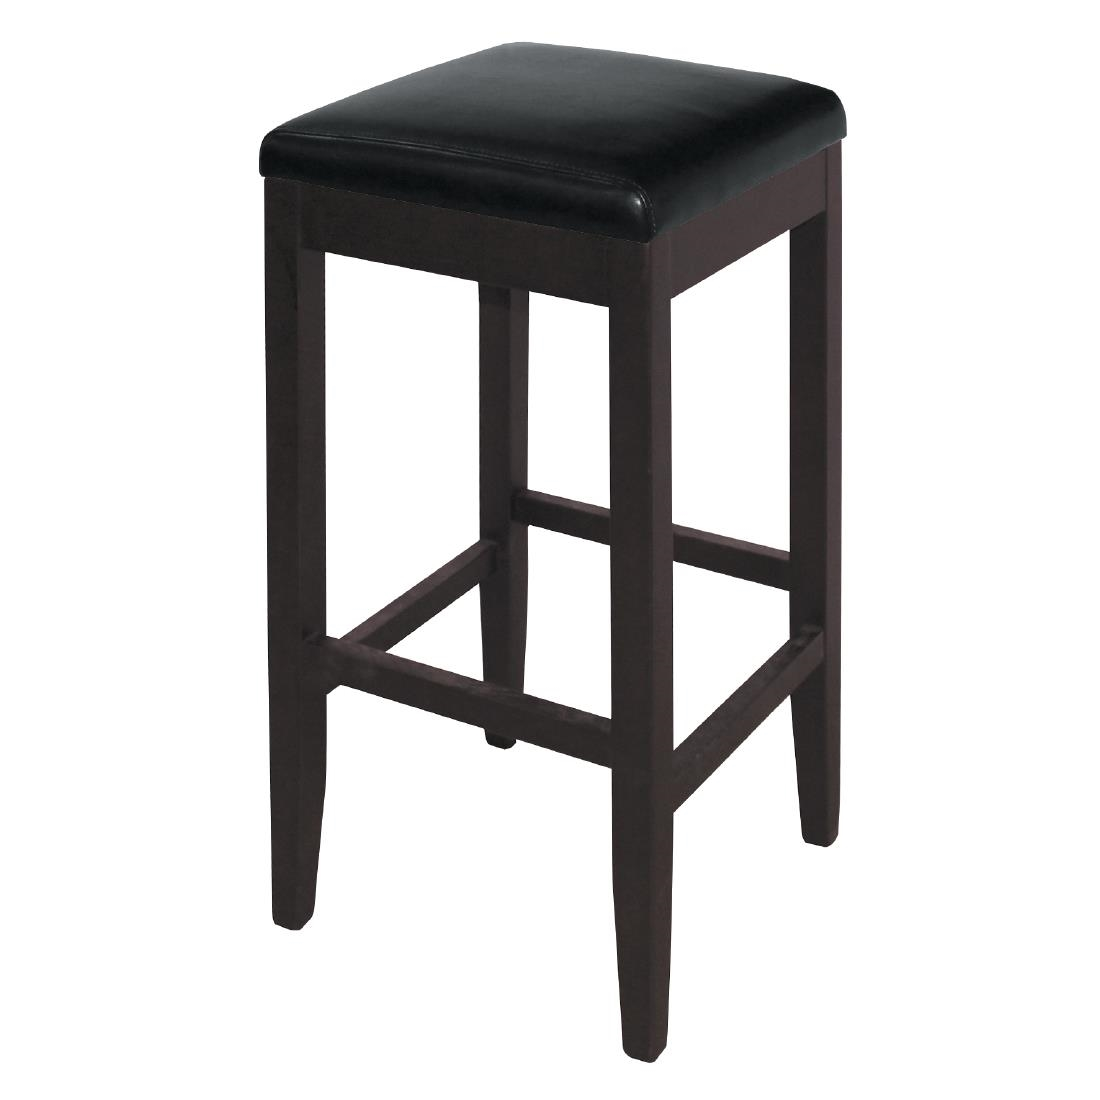 Wood Bar Chairs Bolero Black Faux Leather Wooden Bar Stools Pack Of 2